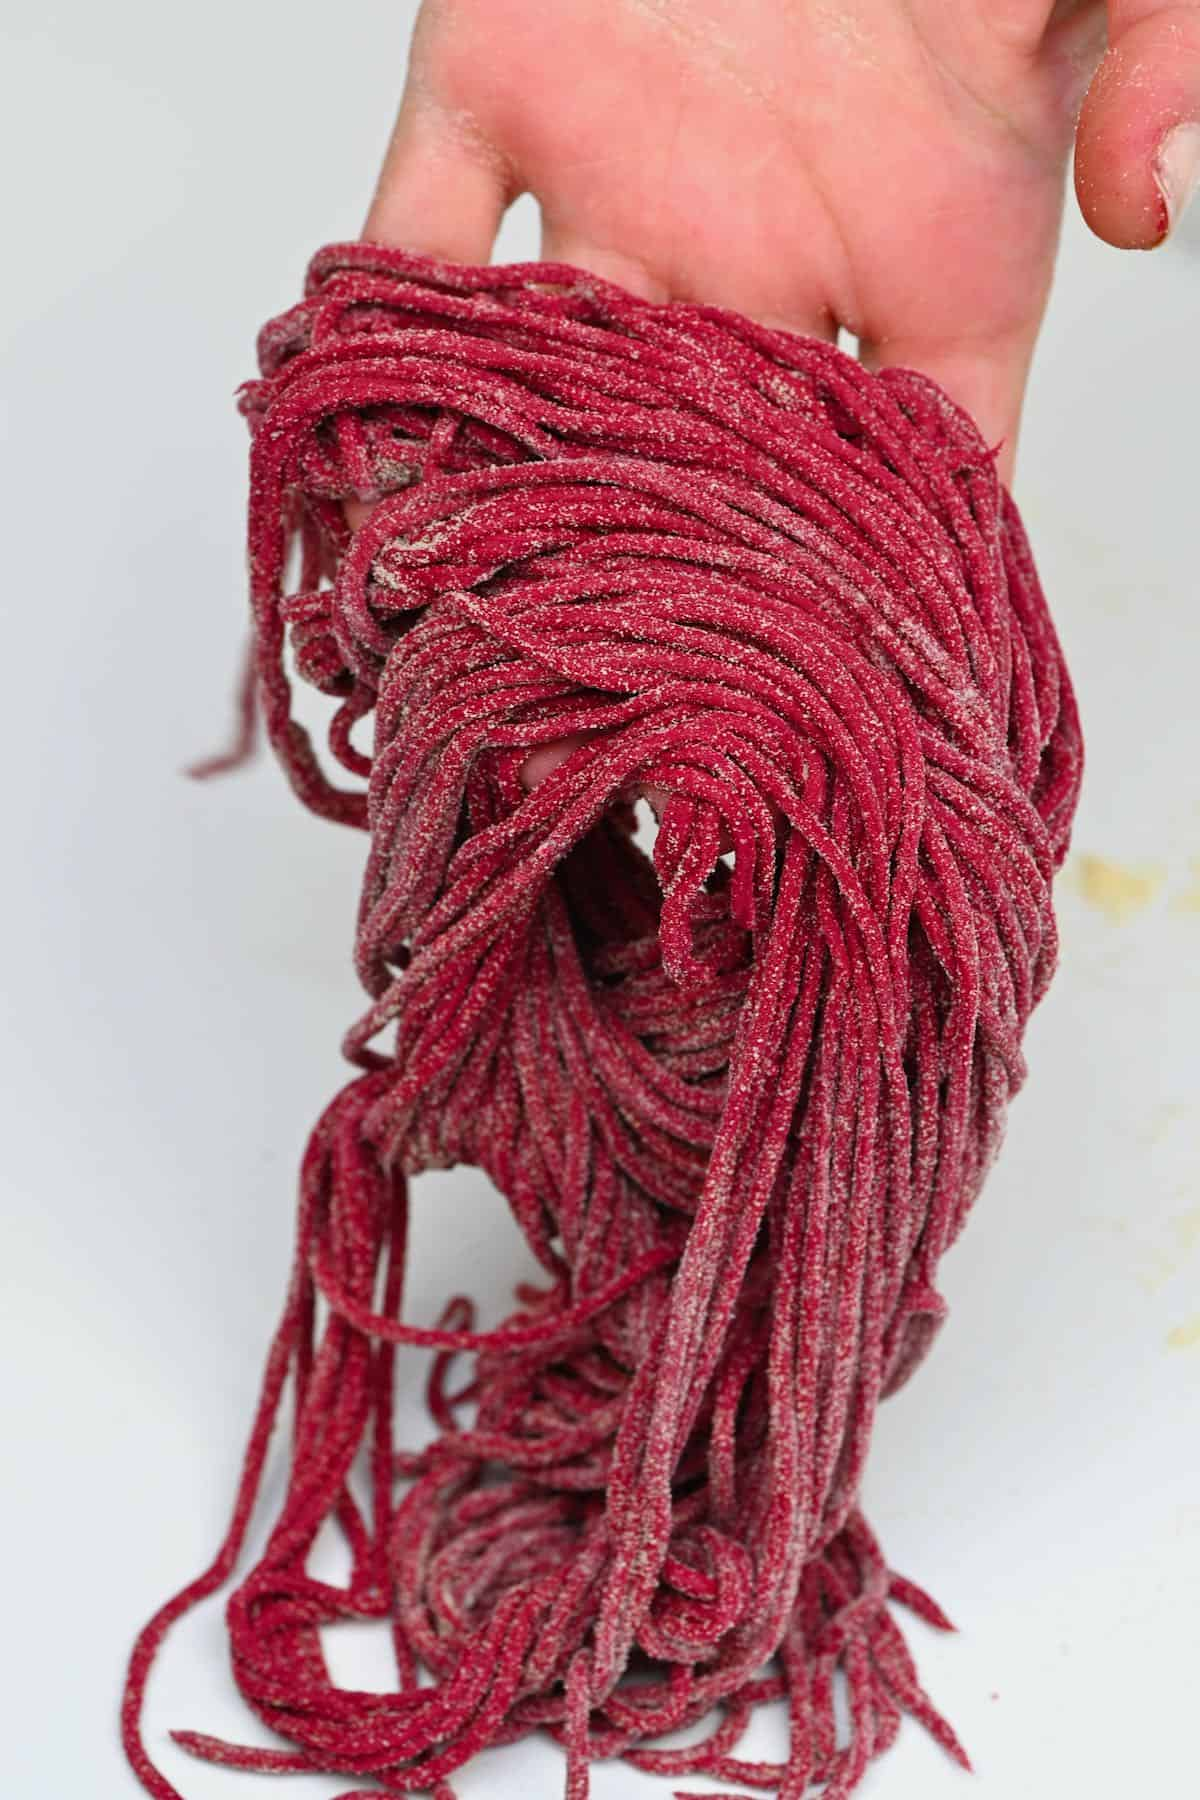 A handful of beetroot pasta